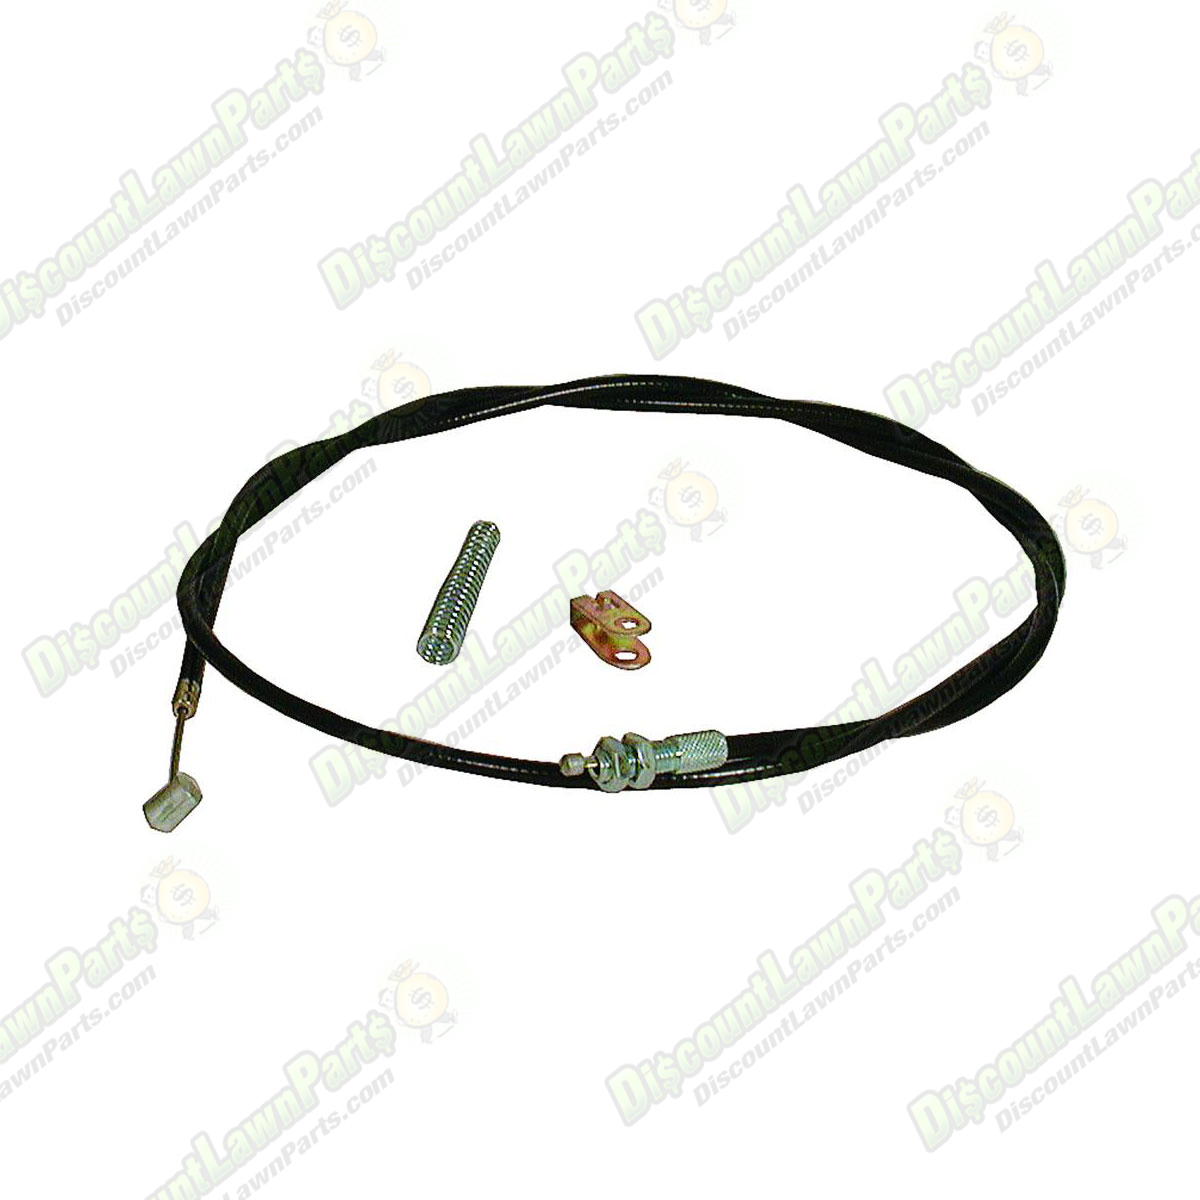 Brake Cable 56 Inch